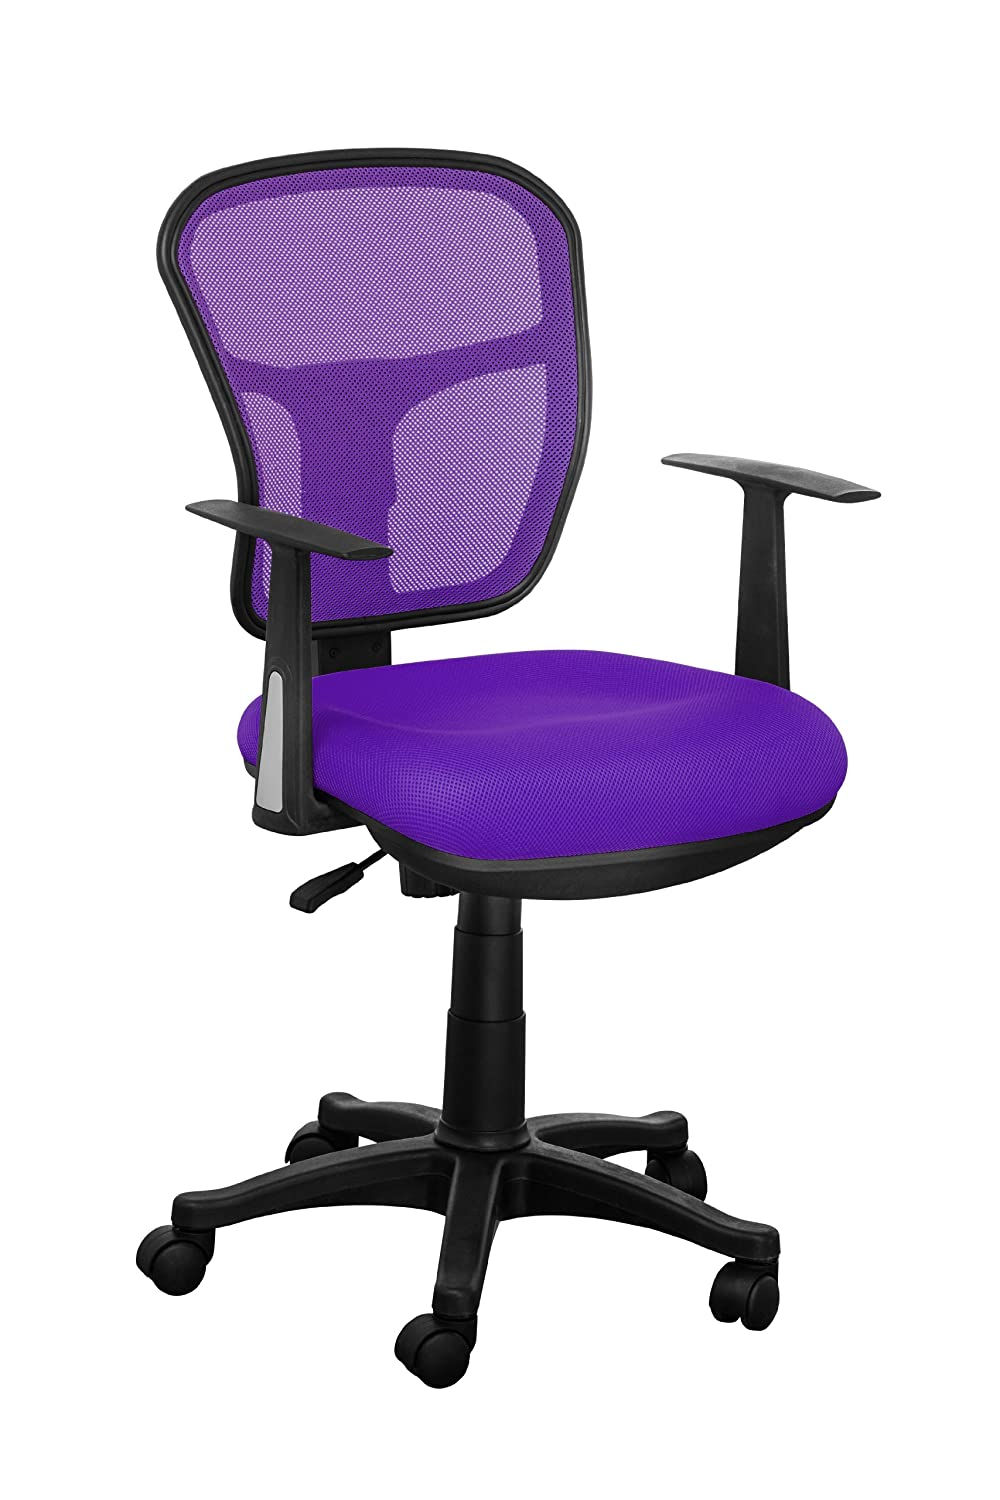 Premier Housewares Office Chair Purple Amazoncouk Kitchen Home - Computer chair uk